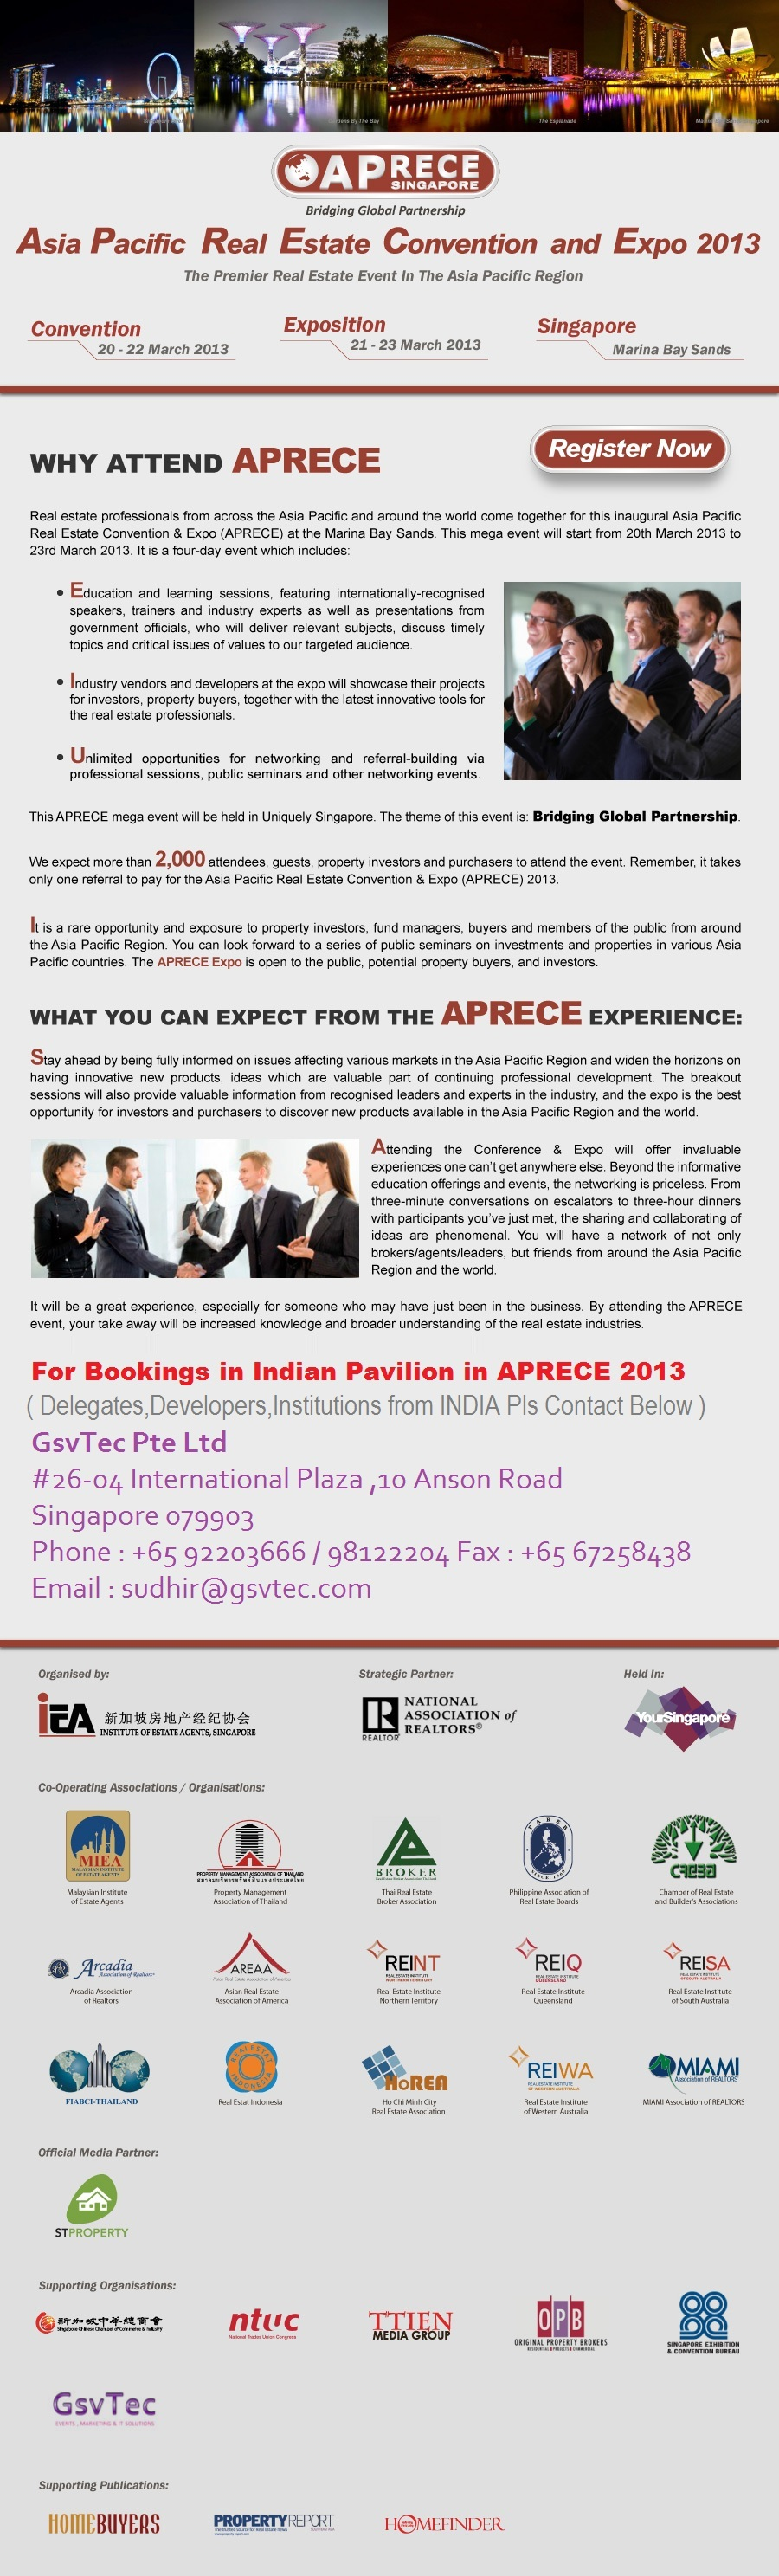 Indian property showcase at Indian Pavilion at APRECE 2013 Singapore - asia pacific real estate convention and expo 2013